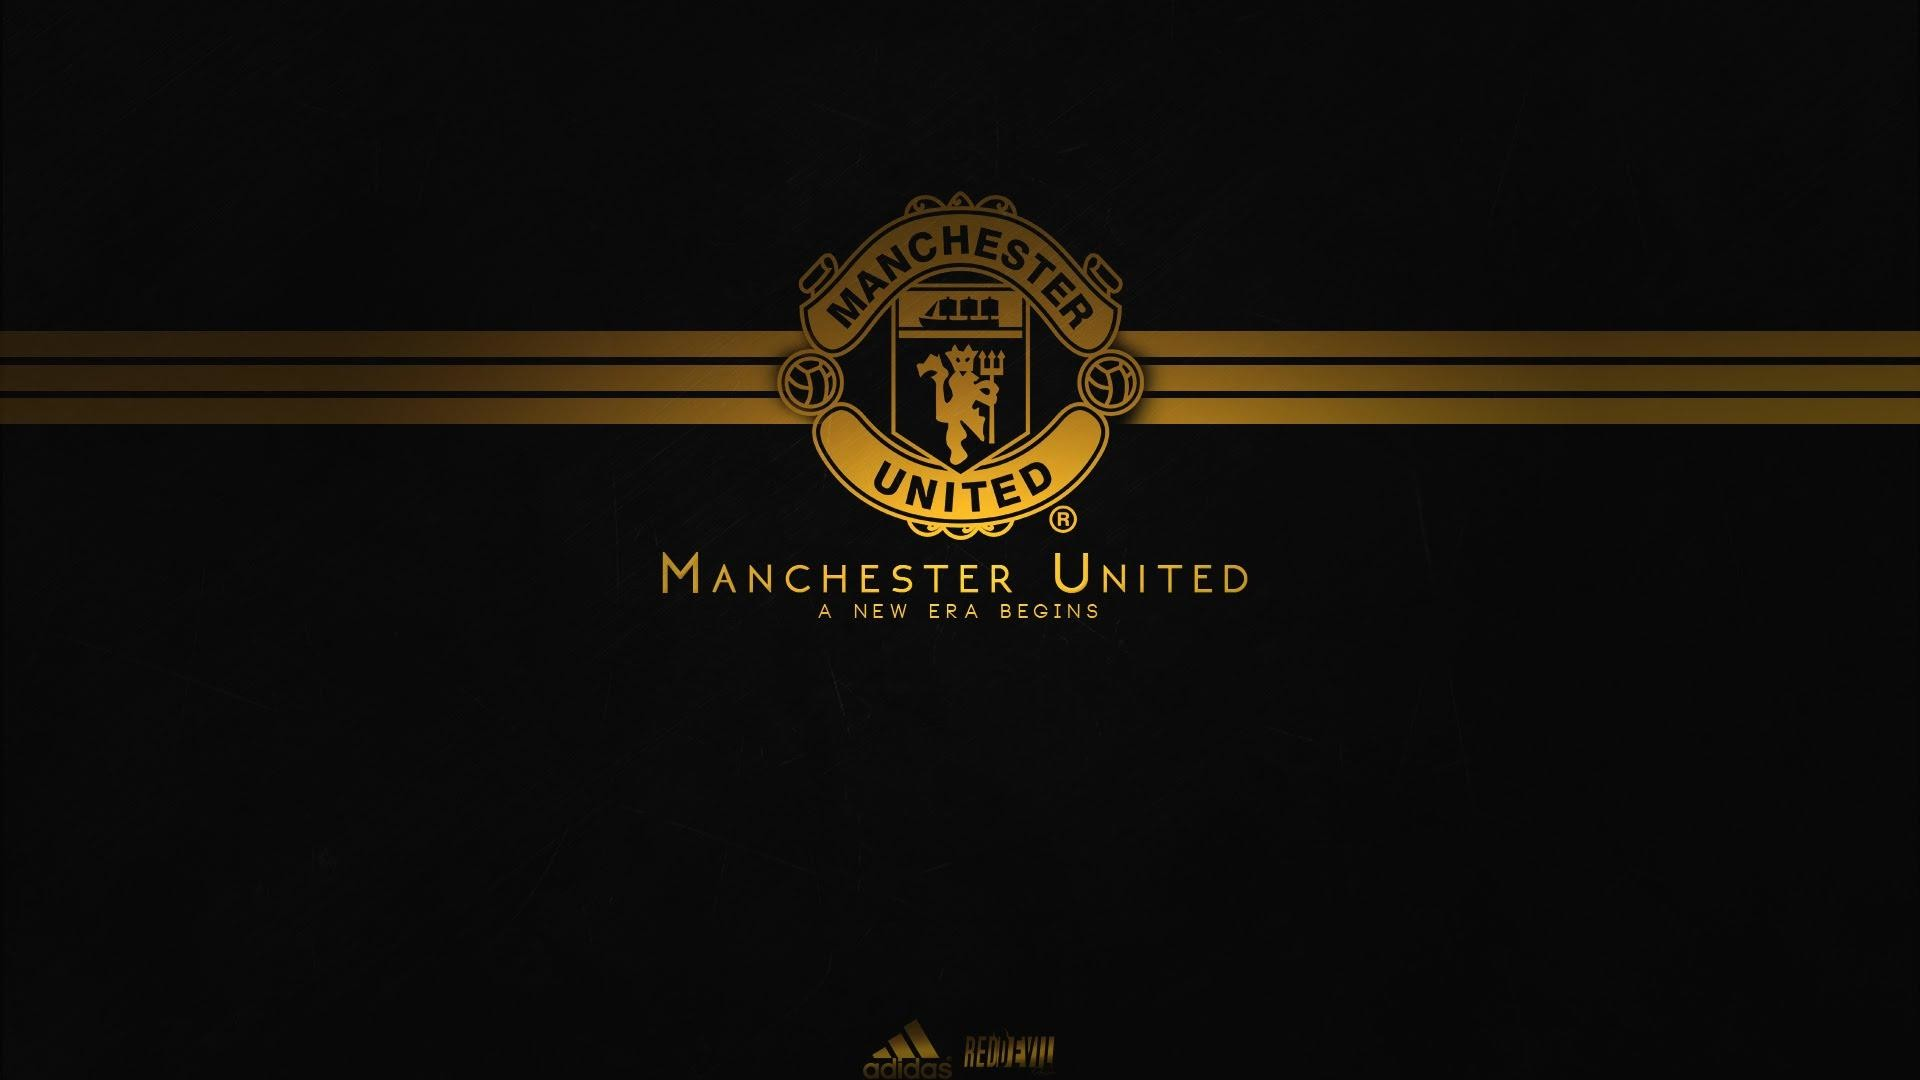 Manchester United Logo Wallpaper Hd 2017 Wallpapertag